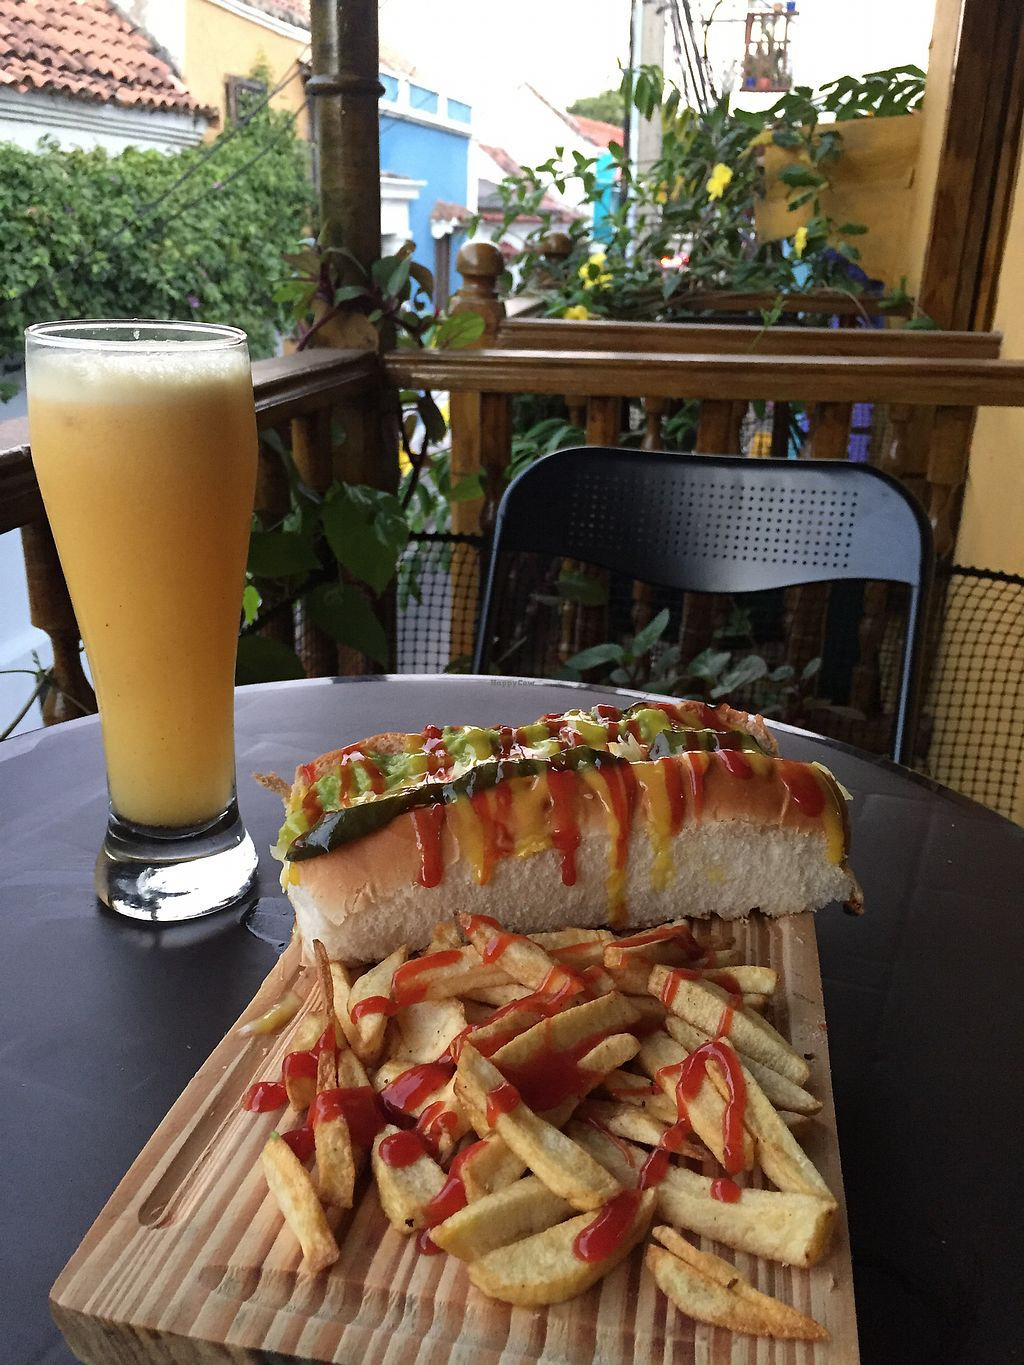 """Photo of Samudra Govindas  by <a href=""""/members/profile/Lorna87"""">Lorna87</a> <br/>Hotdog with vegan cheese, guacamole and pickles <br/> February 12, 2018  - <a href='/contact/abuse/image/95073/358605'>Report</a>"""